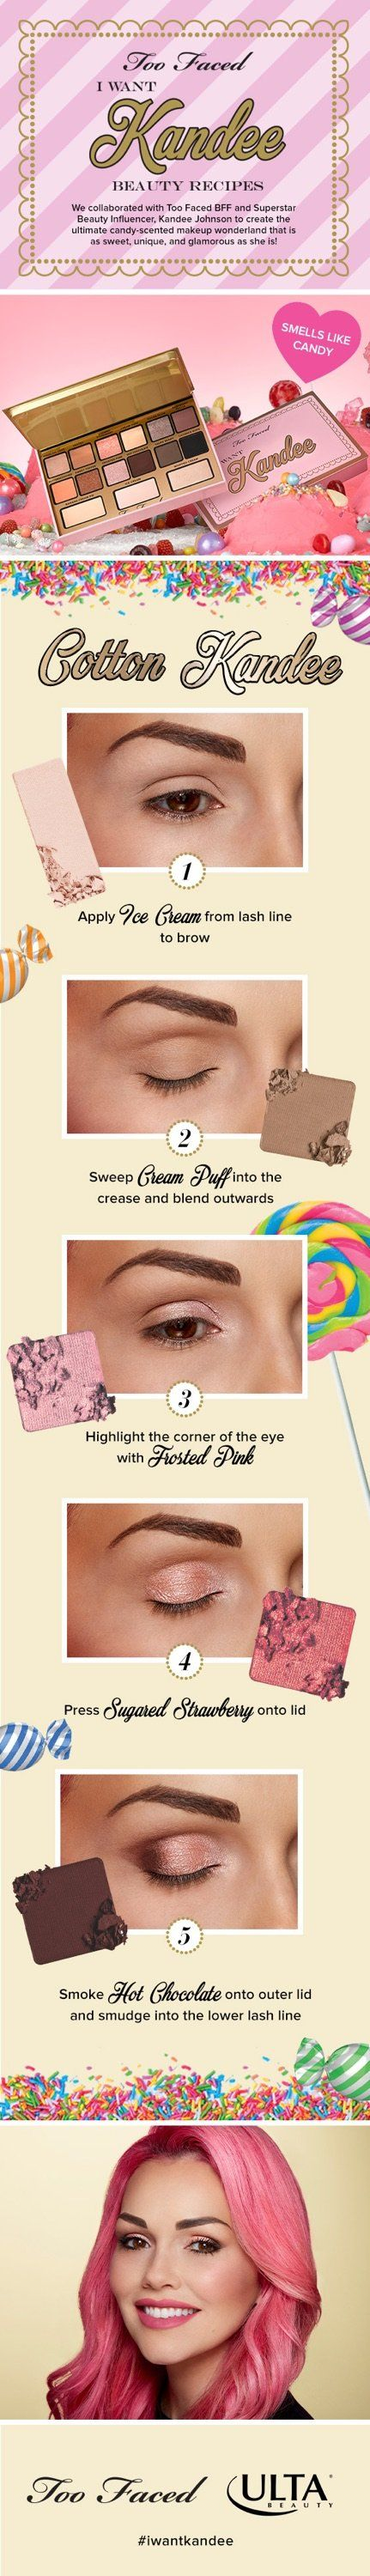 Step into your own beauty dream world with this delicious blend of Kandee's most coveted eye looks. Includes her signature beauty recipes look book so you can create the looks, just like Kandee! Shop the Too Faced I Want Kandee exclusively at Ulta Beauty.